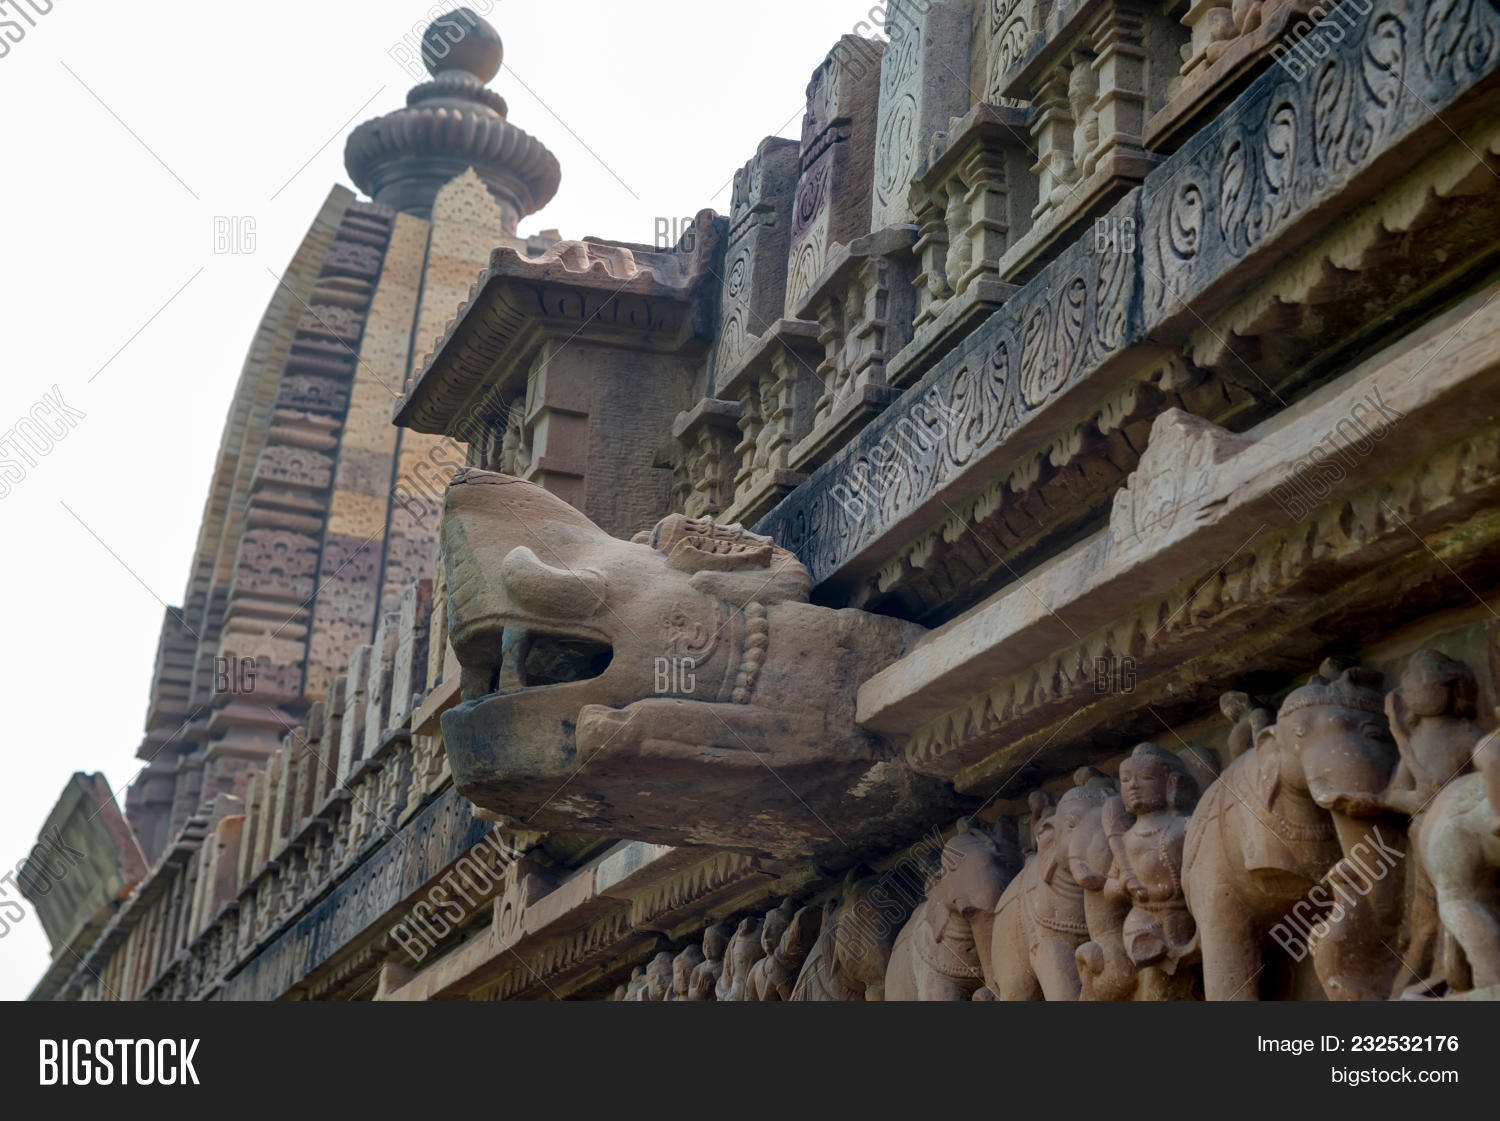 🔥 Close Up Stone Animal Head On Wall Of Lakshmana Temple